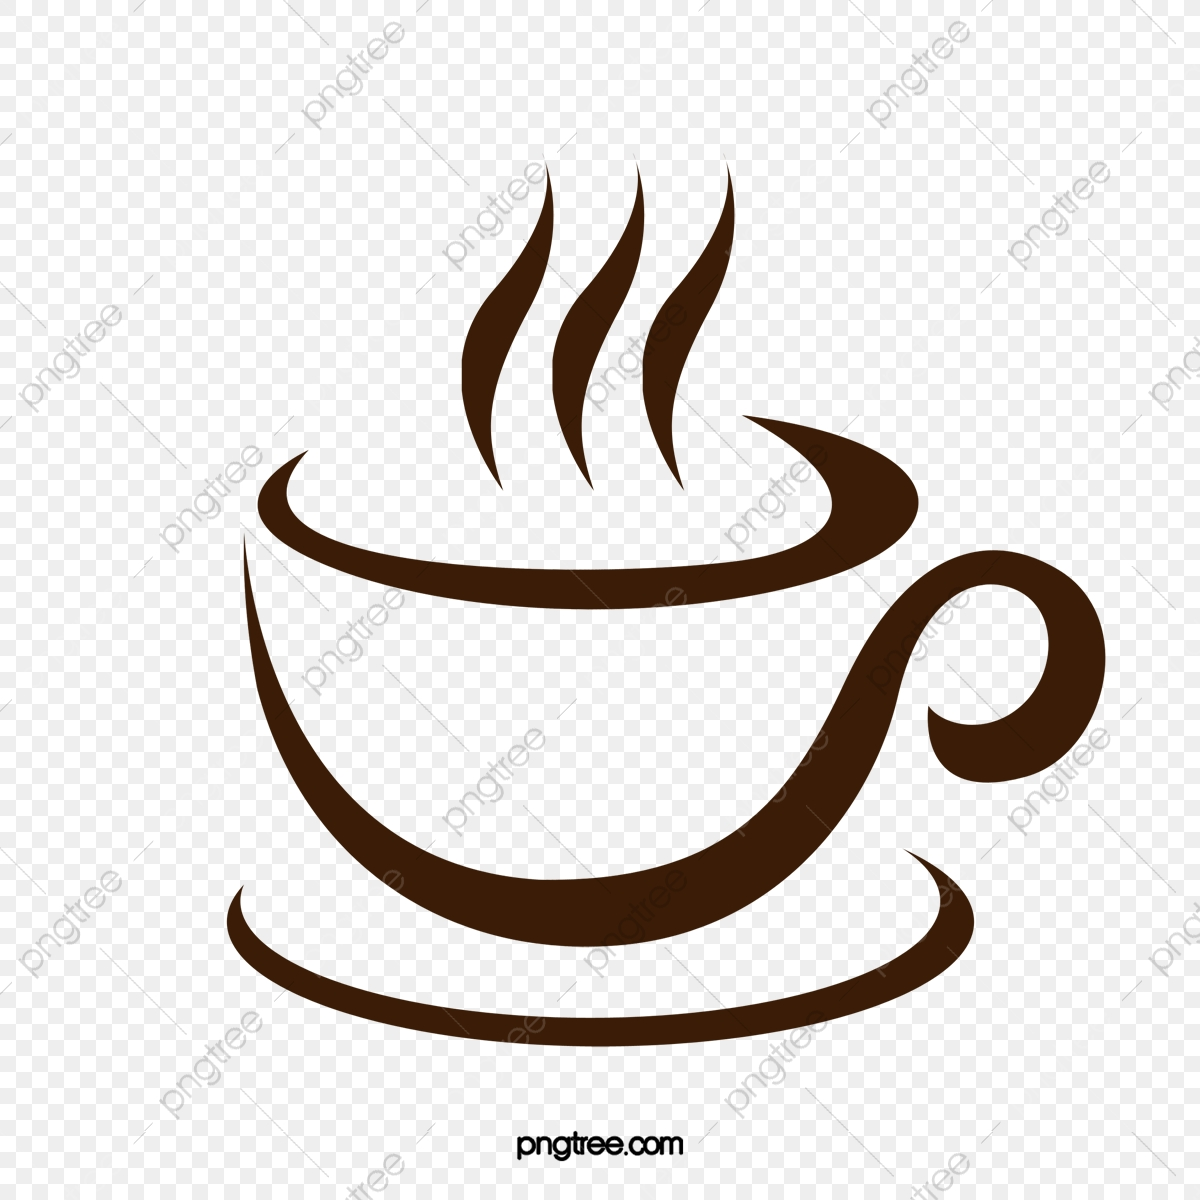 Decorative Coffee Cup Vector Material, Coffee, Decorative Motifs.